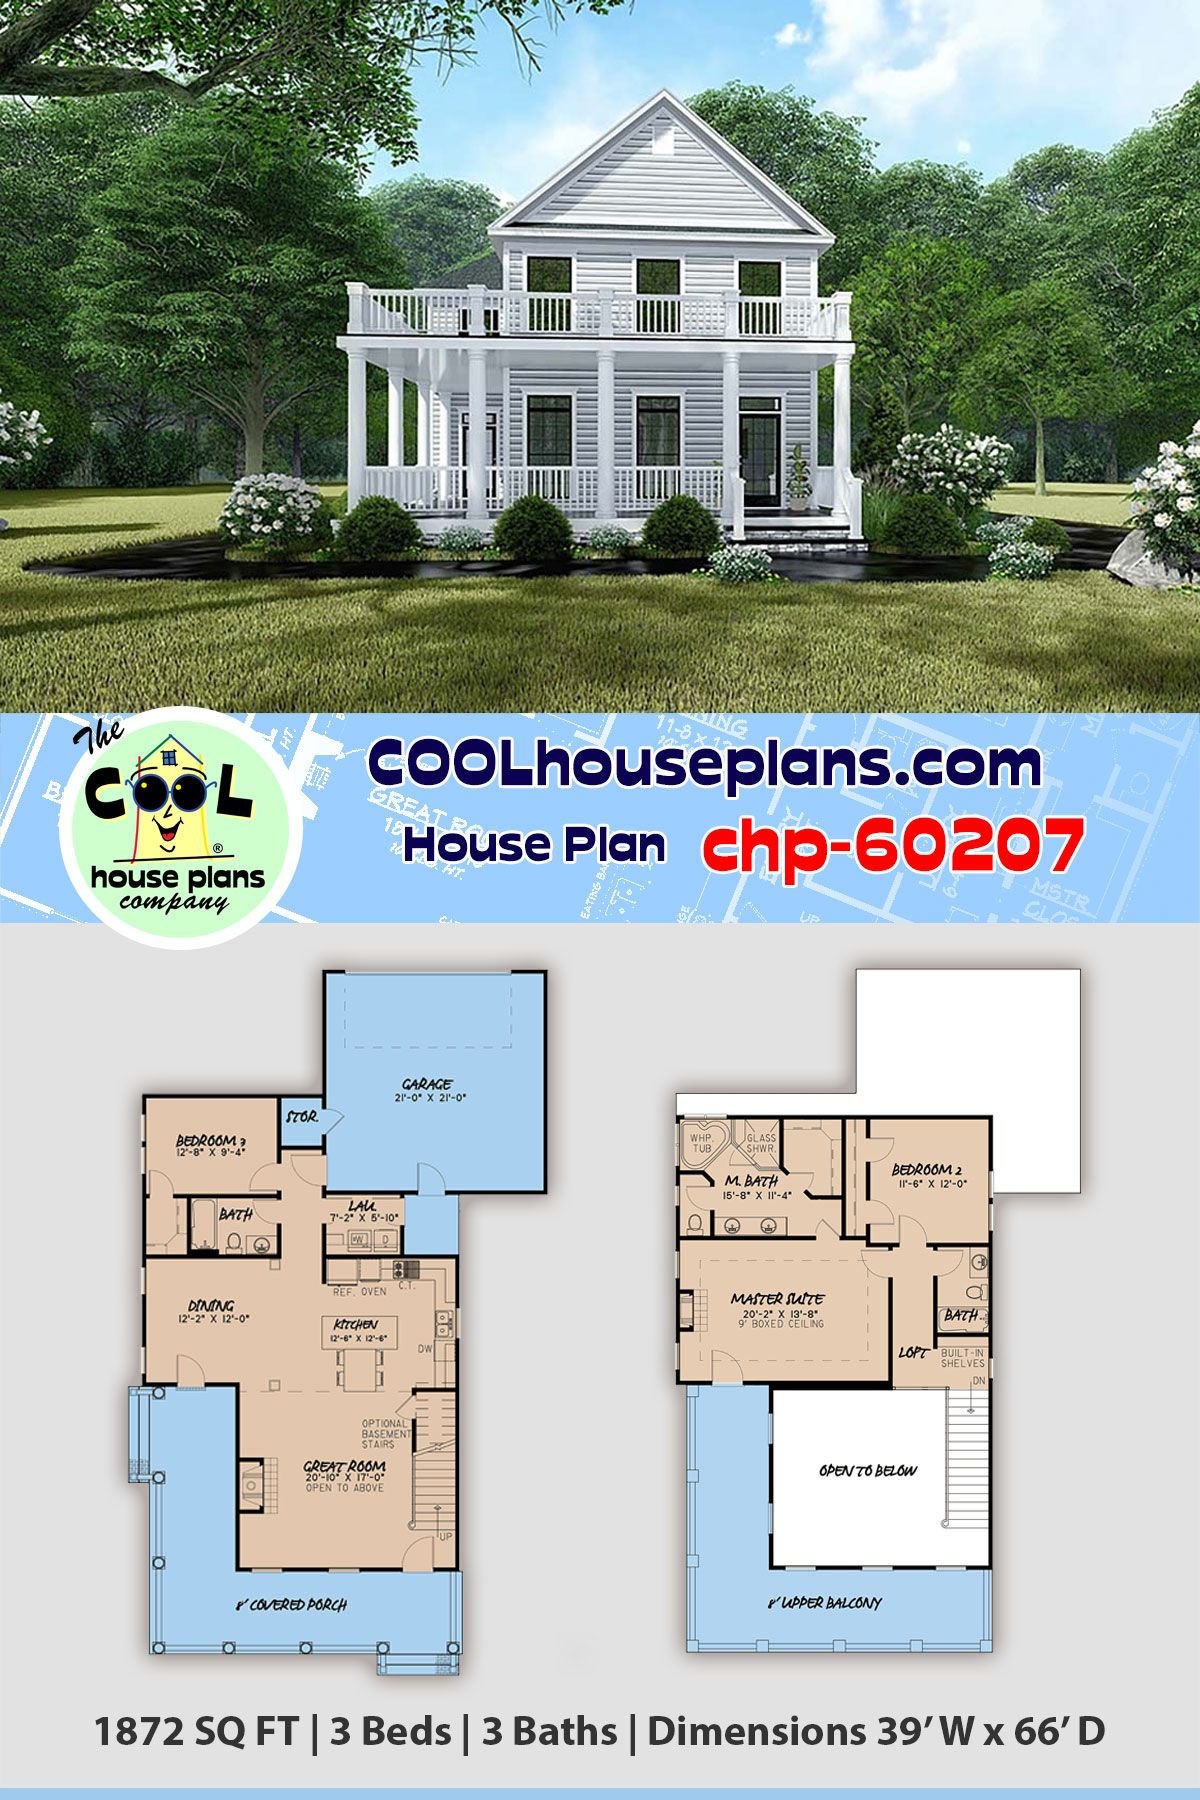 Traditional Neighborhood Plan Chp 60207 3 Beds 3 Baths Rear Garage Entry And Stacke Porch House Plans Farmhouse Style House Plans Architectural House Plans